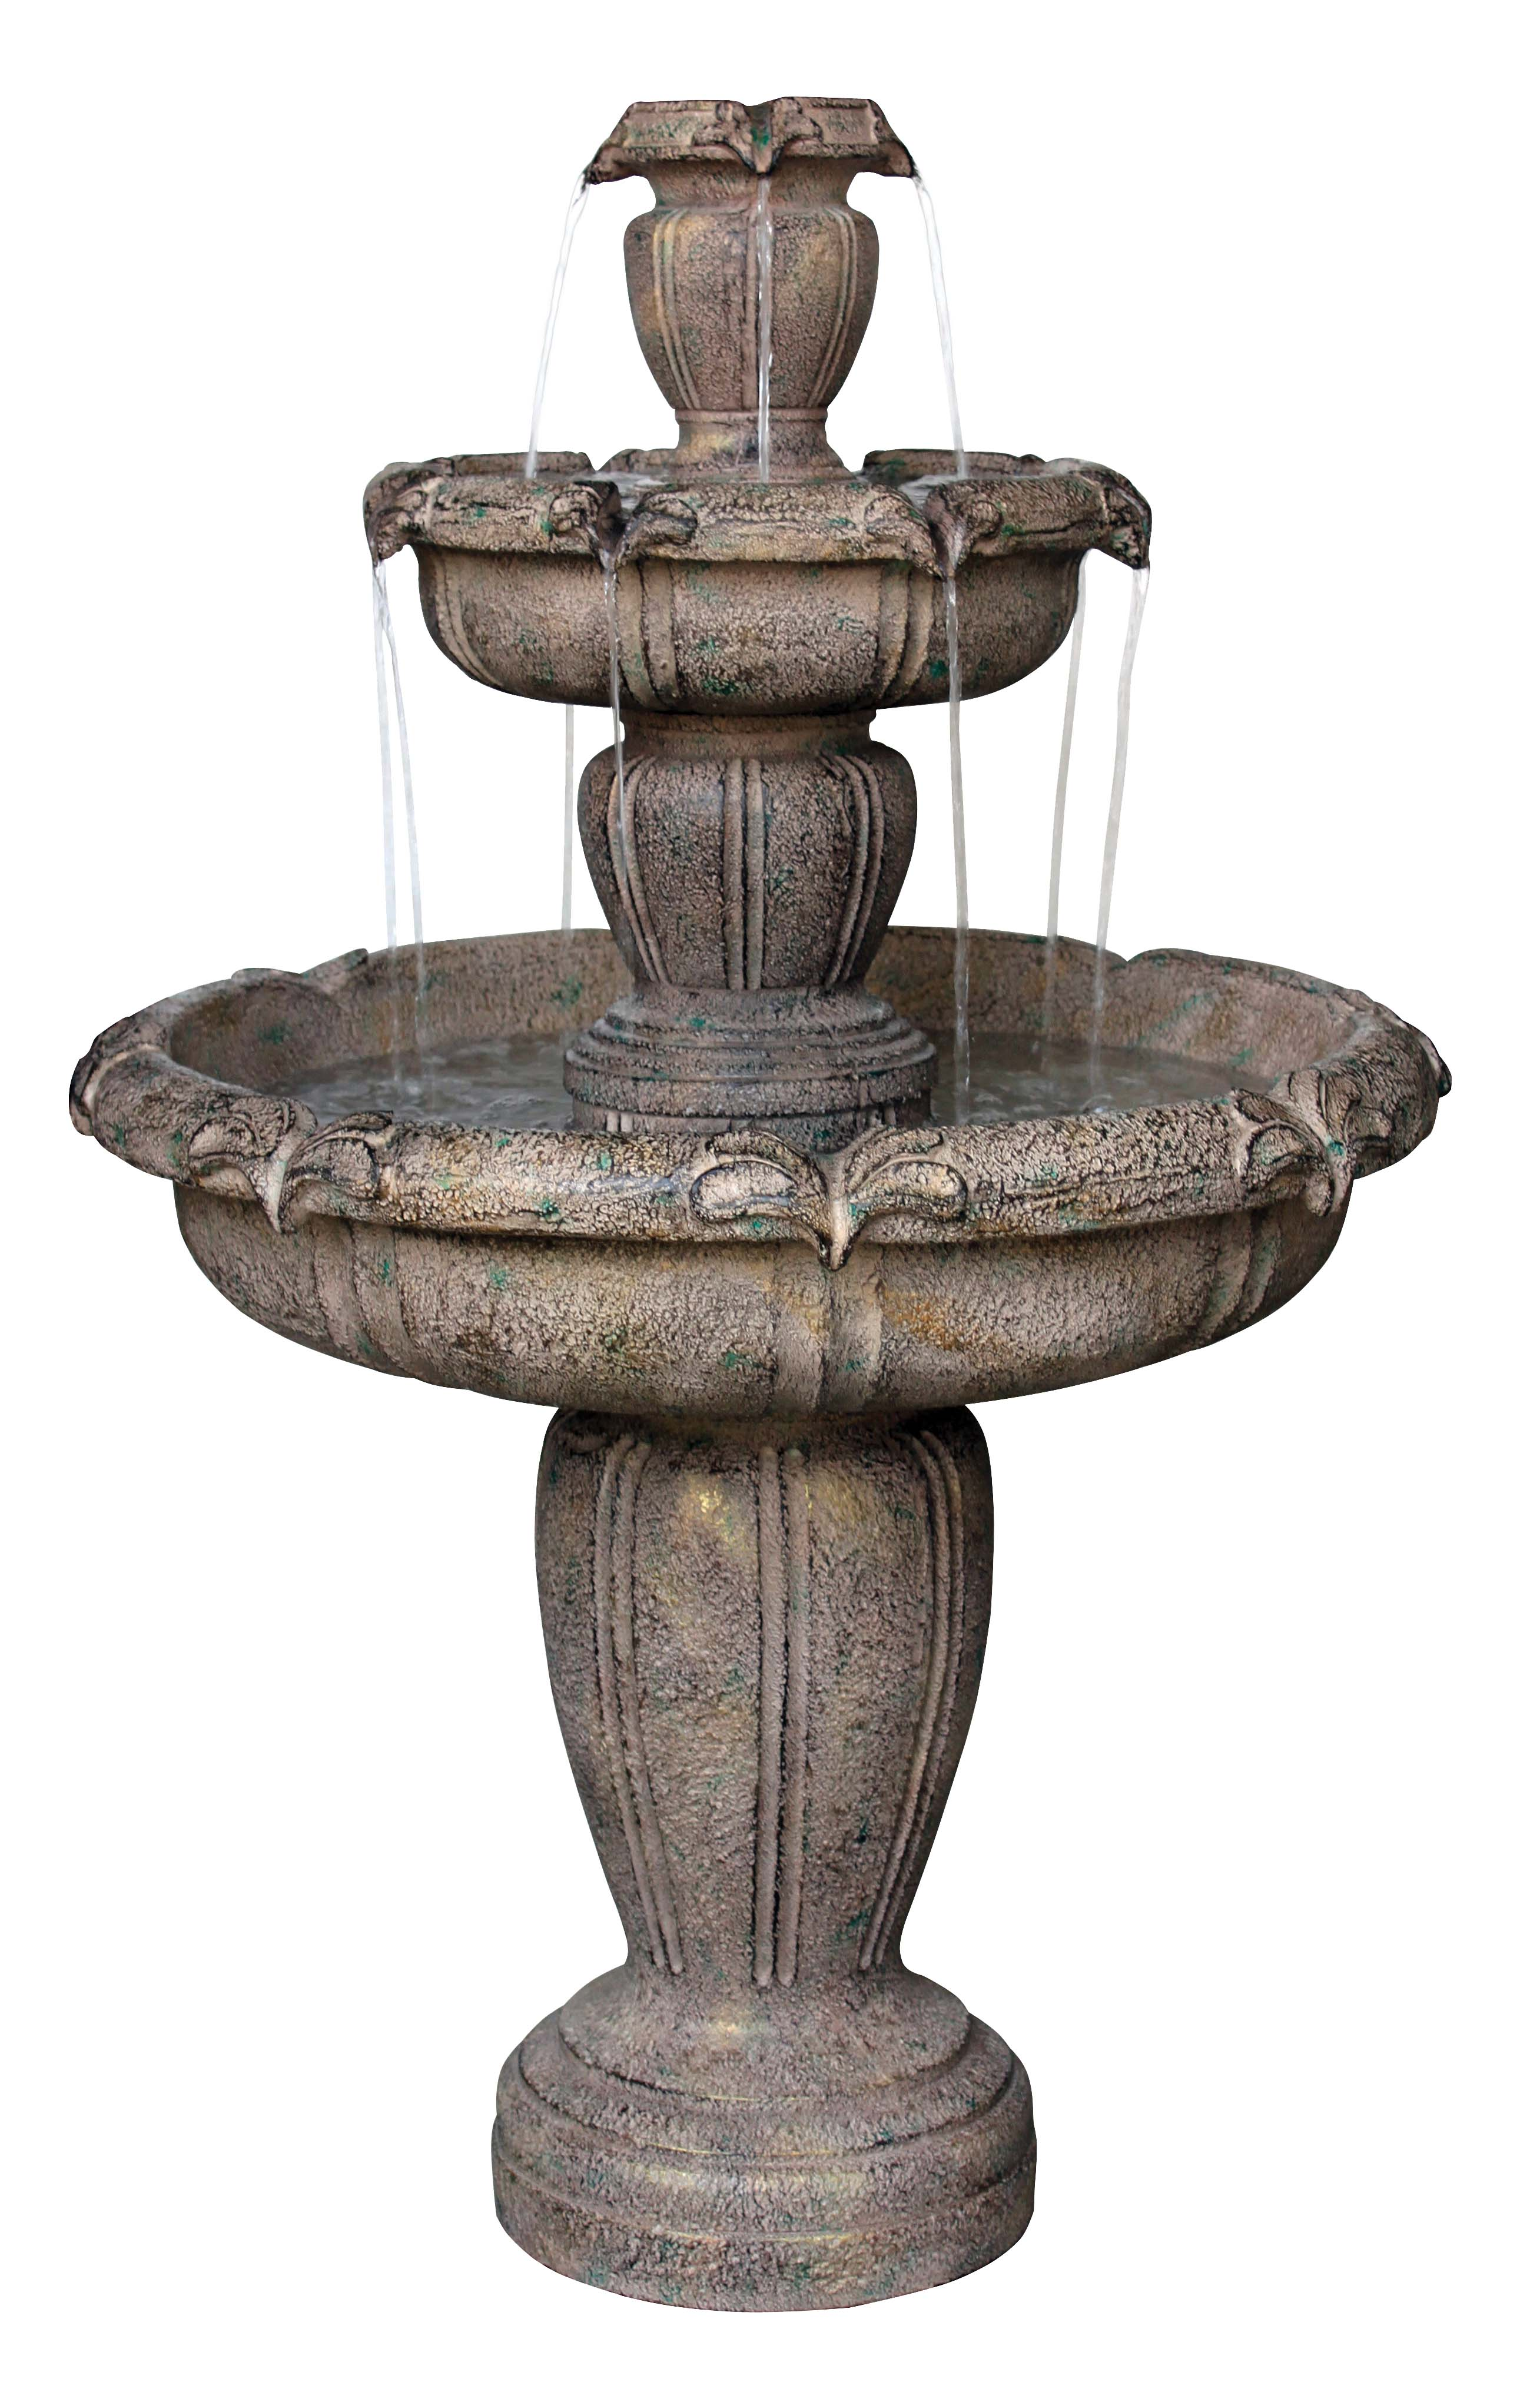 Great Fountain For An Outdoor Water Feature By Itself Or